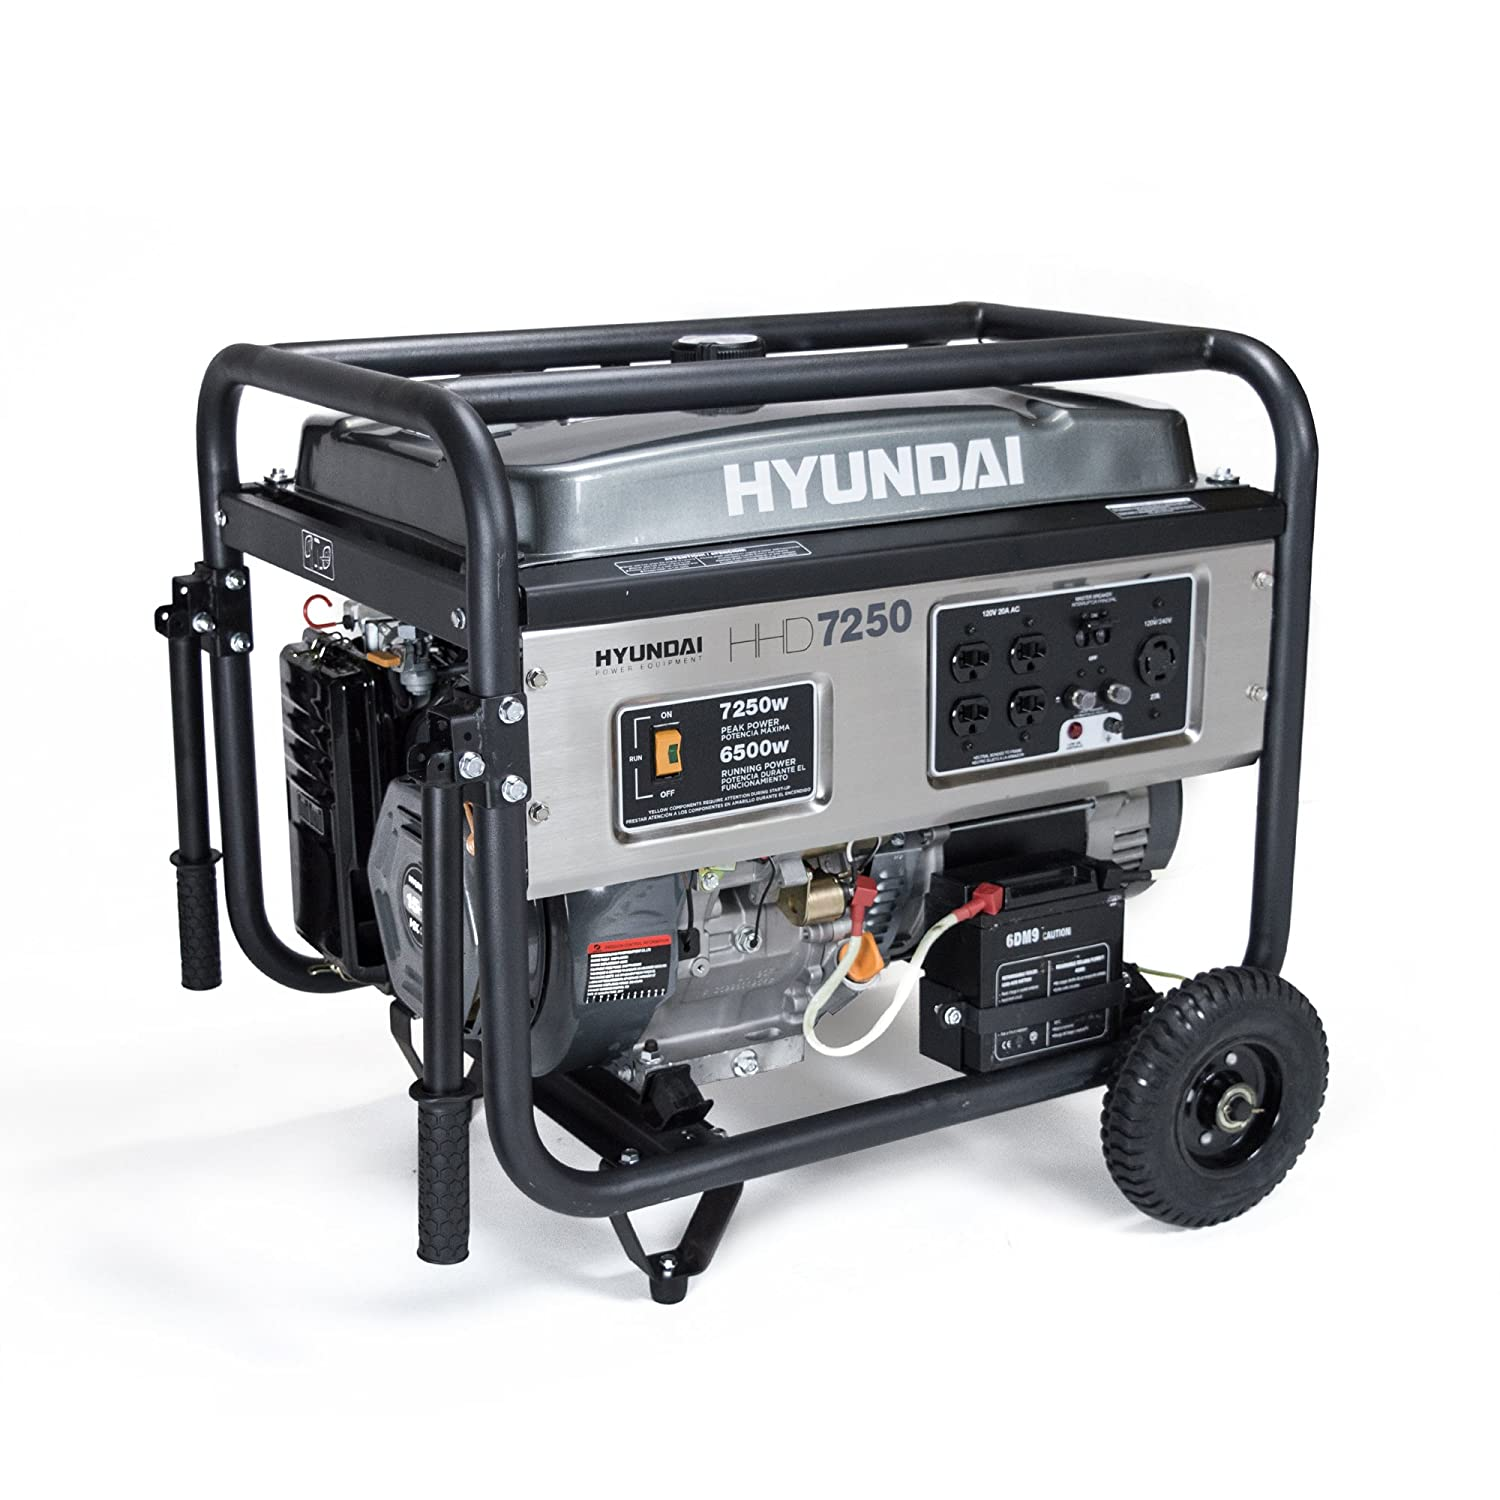 Hyundai GEN HHD7250 with Electric Start Heavy Duity Power